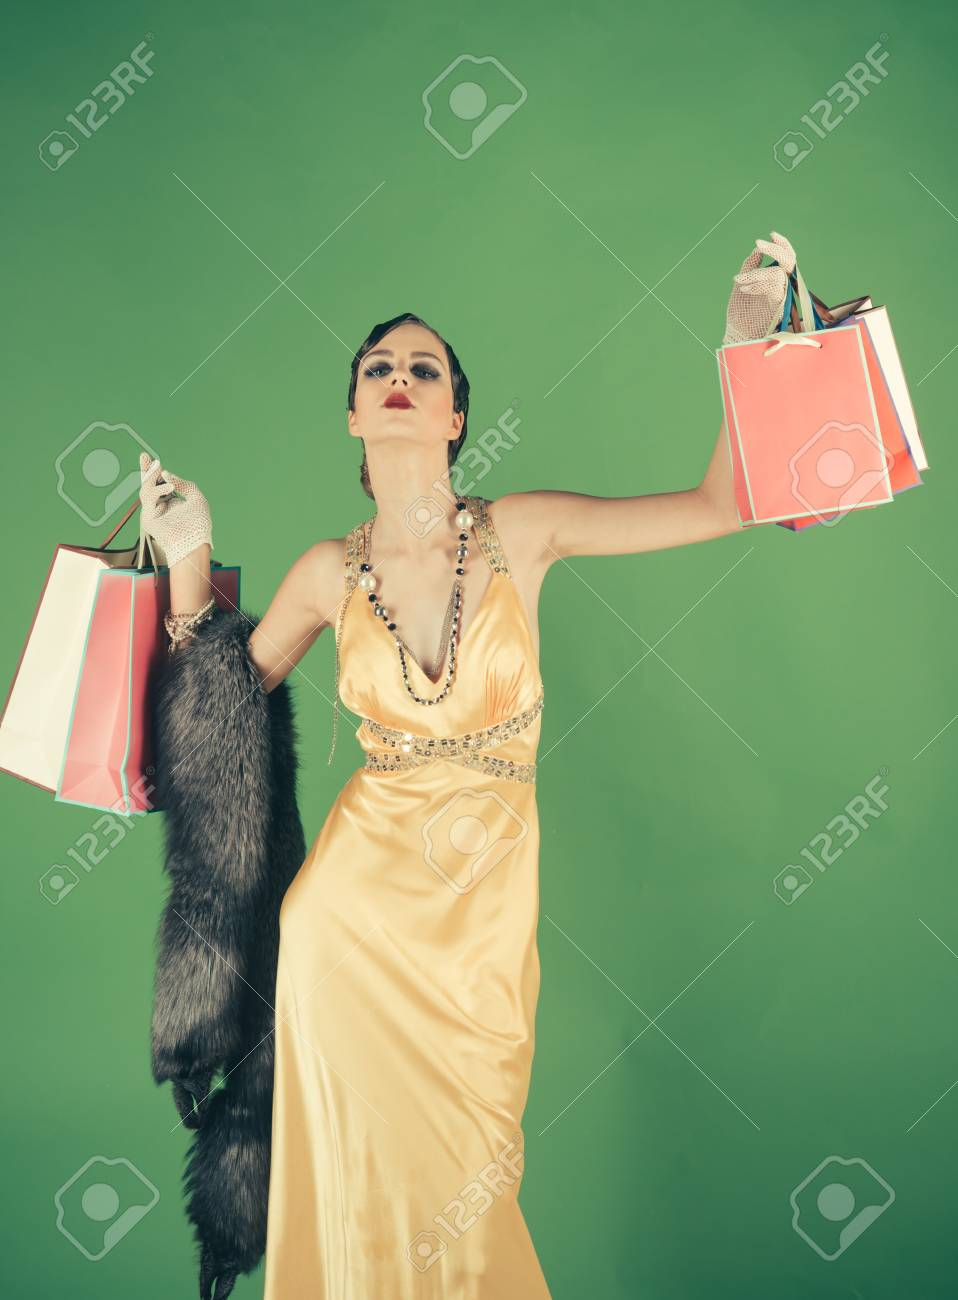 Pin Up Cute Fashion Model On Green Background Shopping Retro